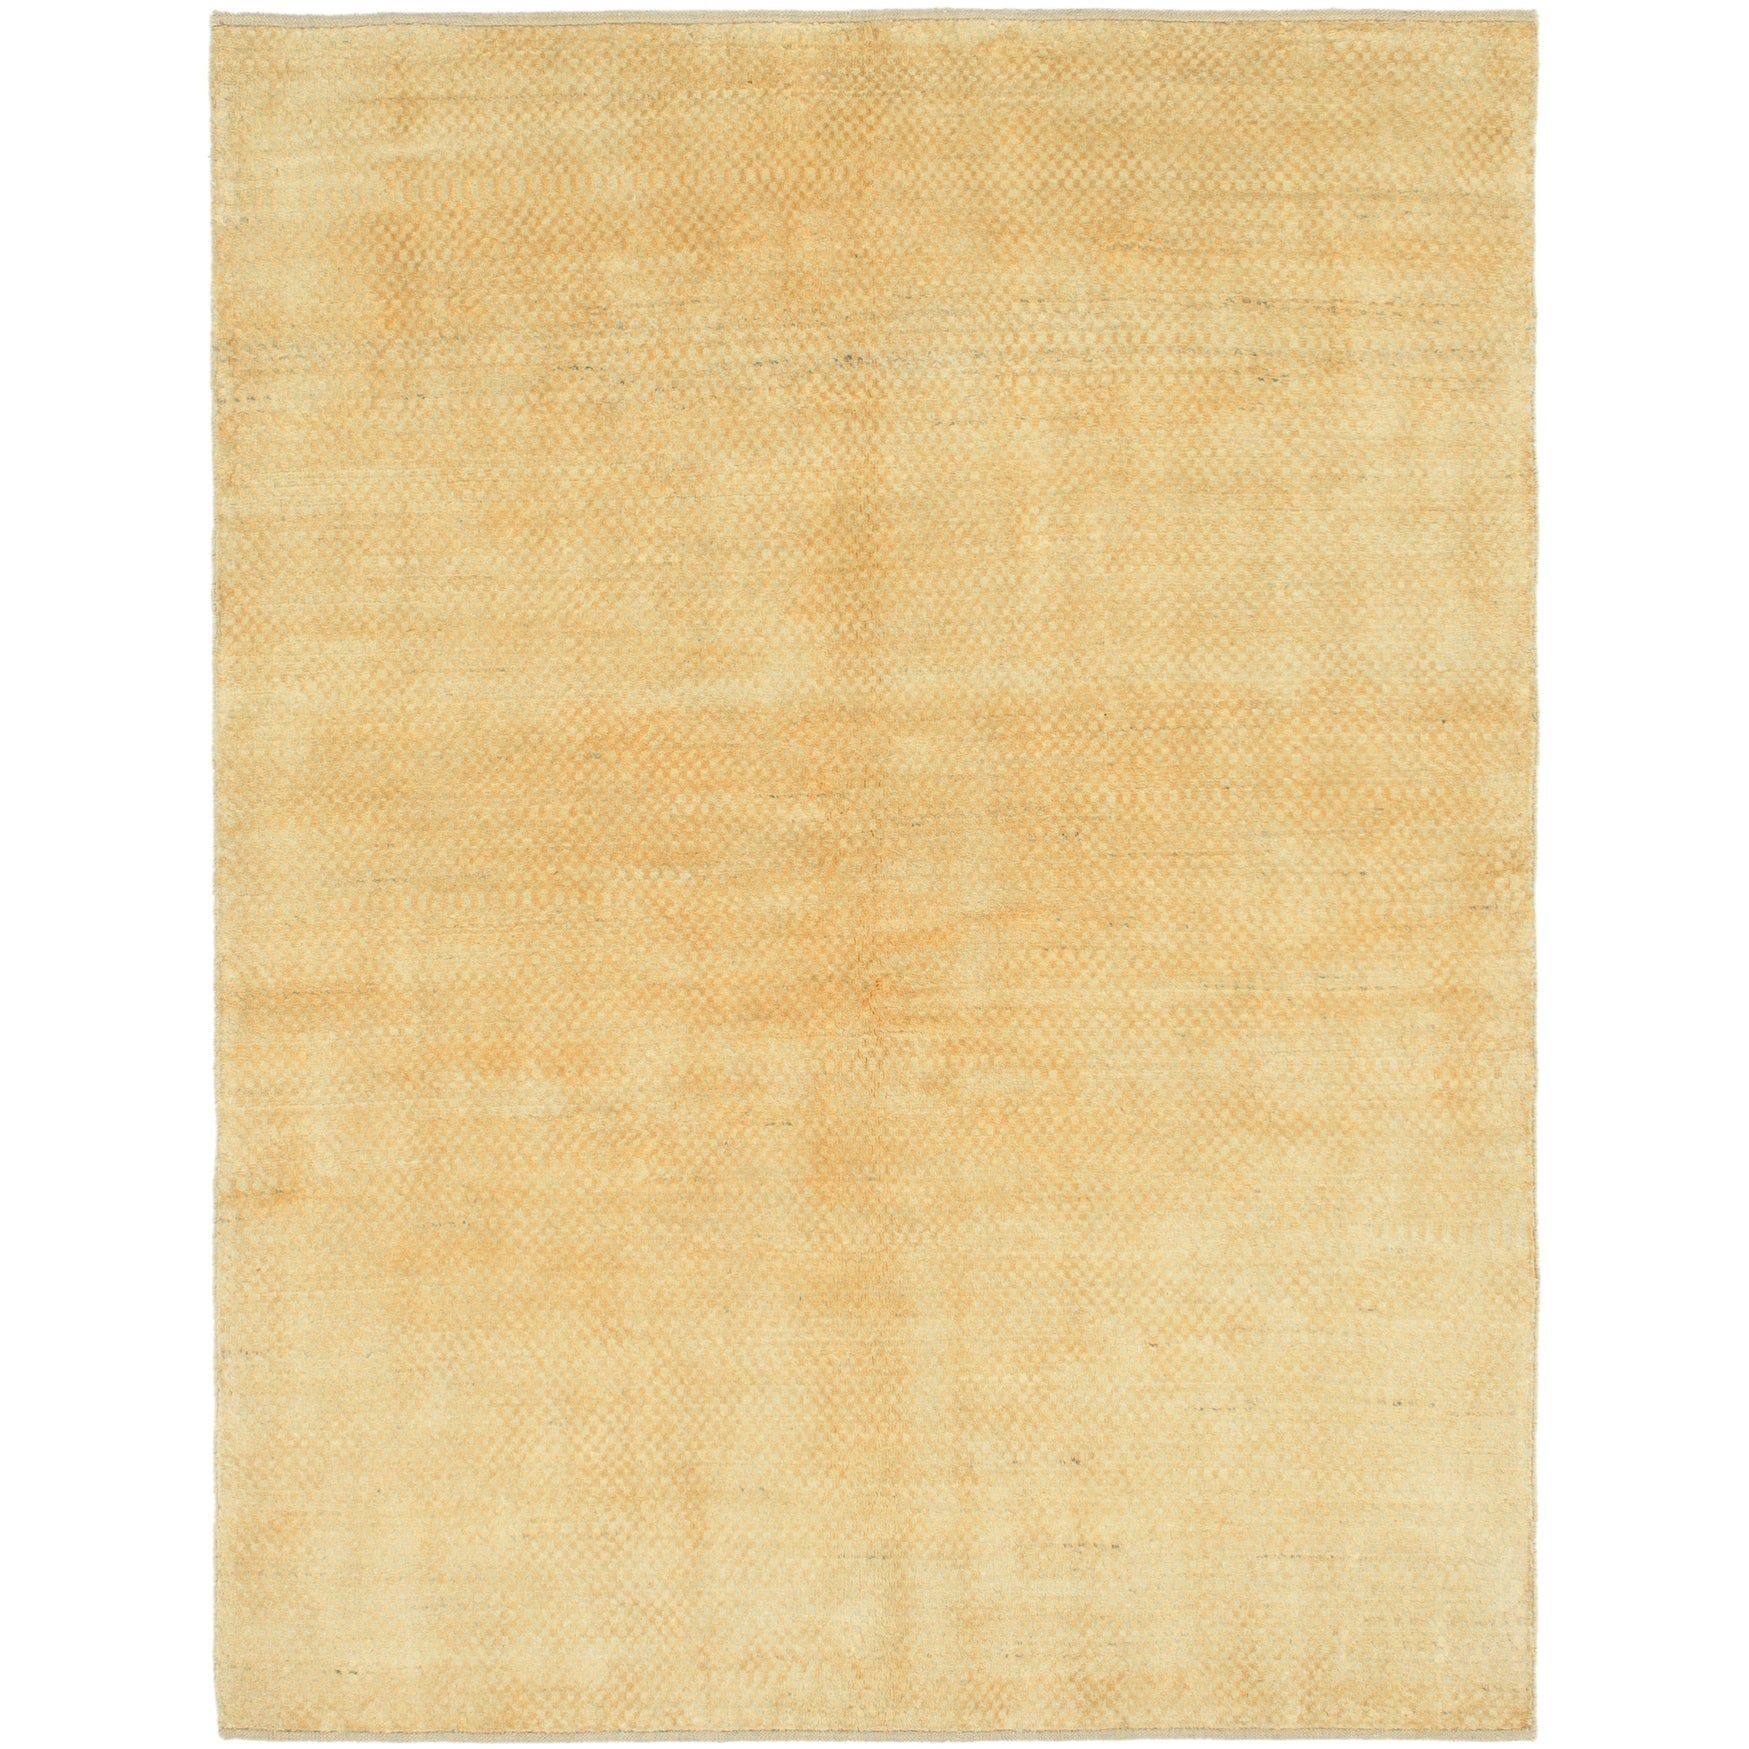 Hand Knotted Kashkuli Gabbeh Wool Area Rug - 5 x 6 8 (Gold - 5 x 6 8)